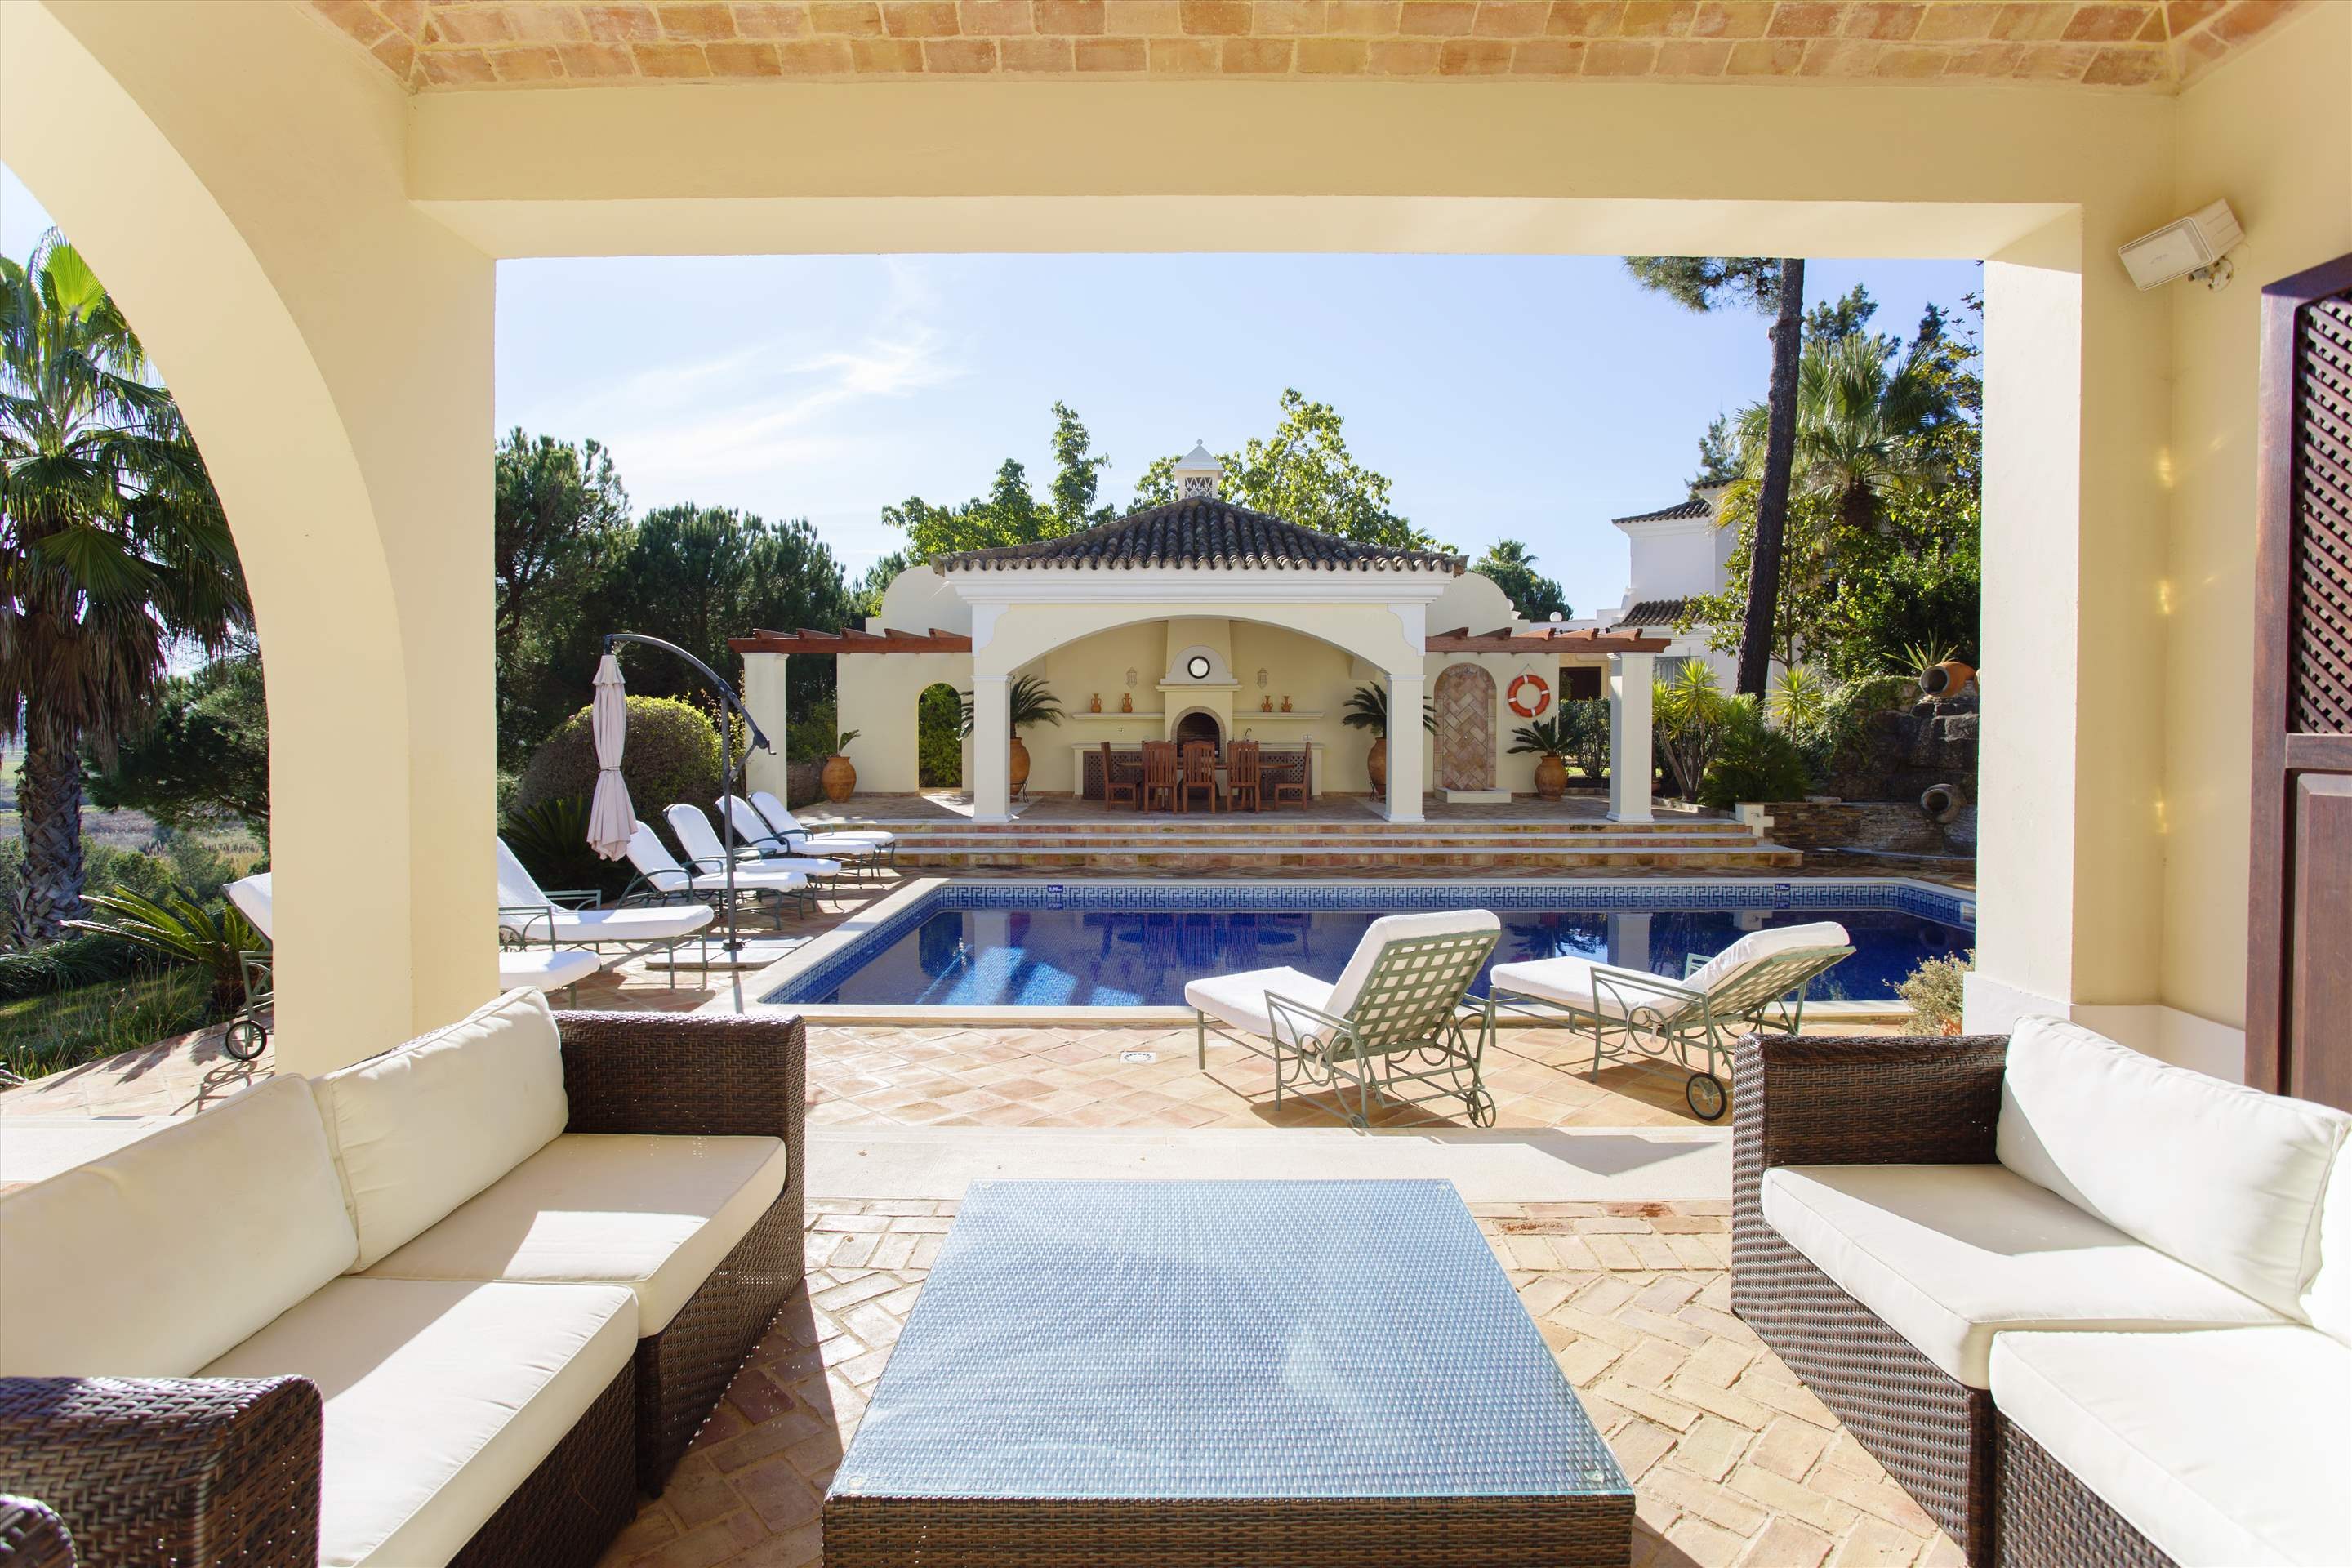 Villa Palmeiras Altas, 5 bedroom villa in Quinta do Lago, Algarve Photo #8